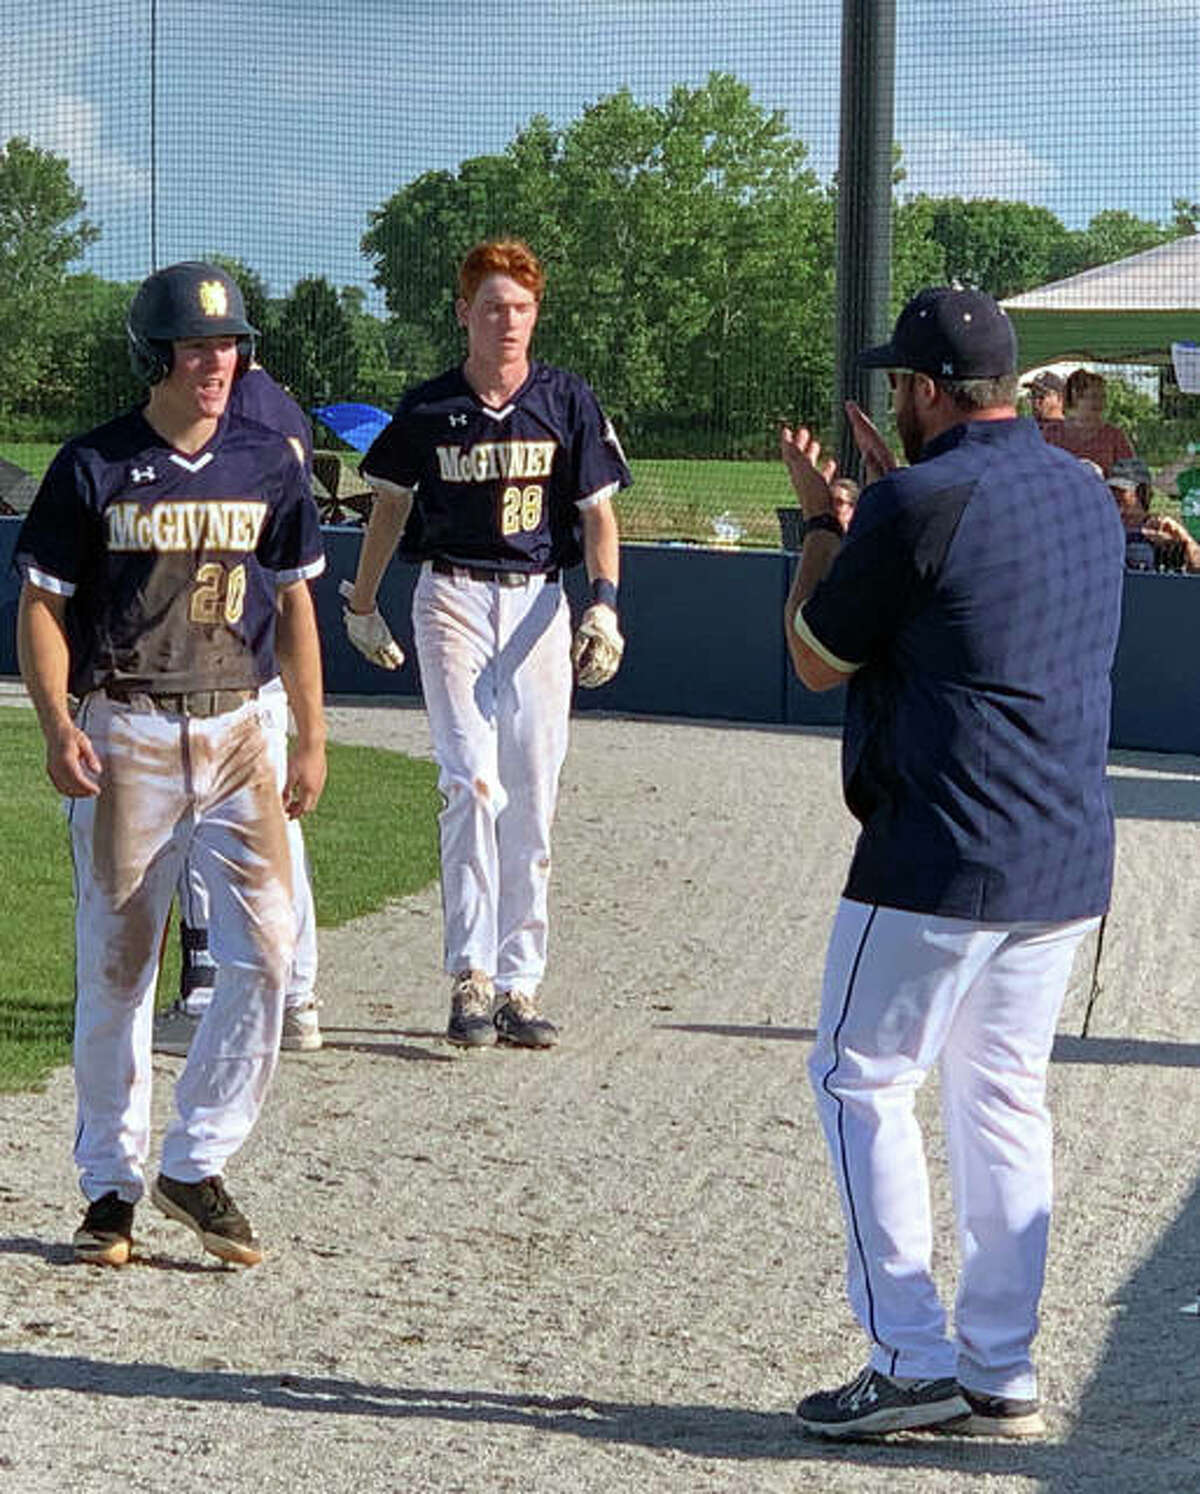 Daniel Gierer, left, and Drew Sowerwine are greeted as they enter the dugout after scoring on a two-run triple by Jackson Rodgers.